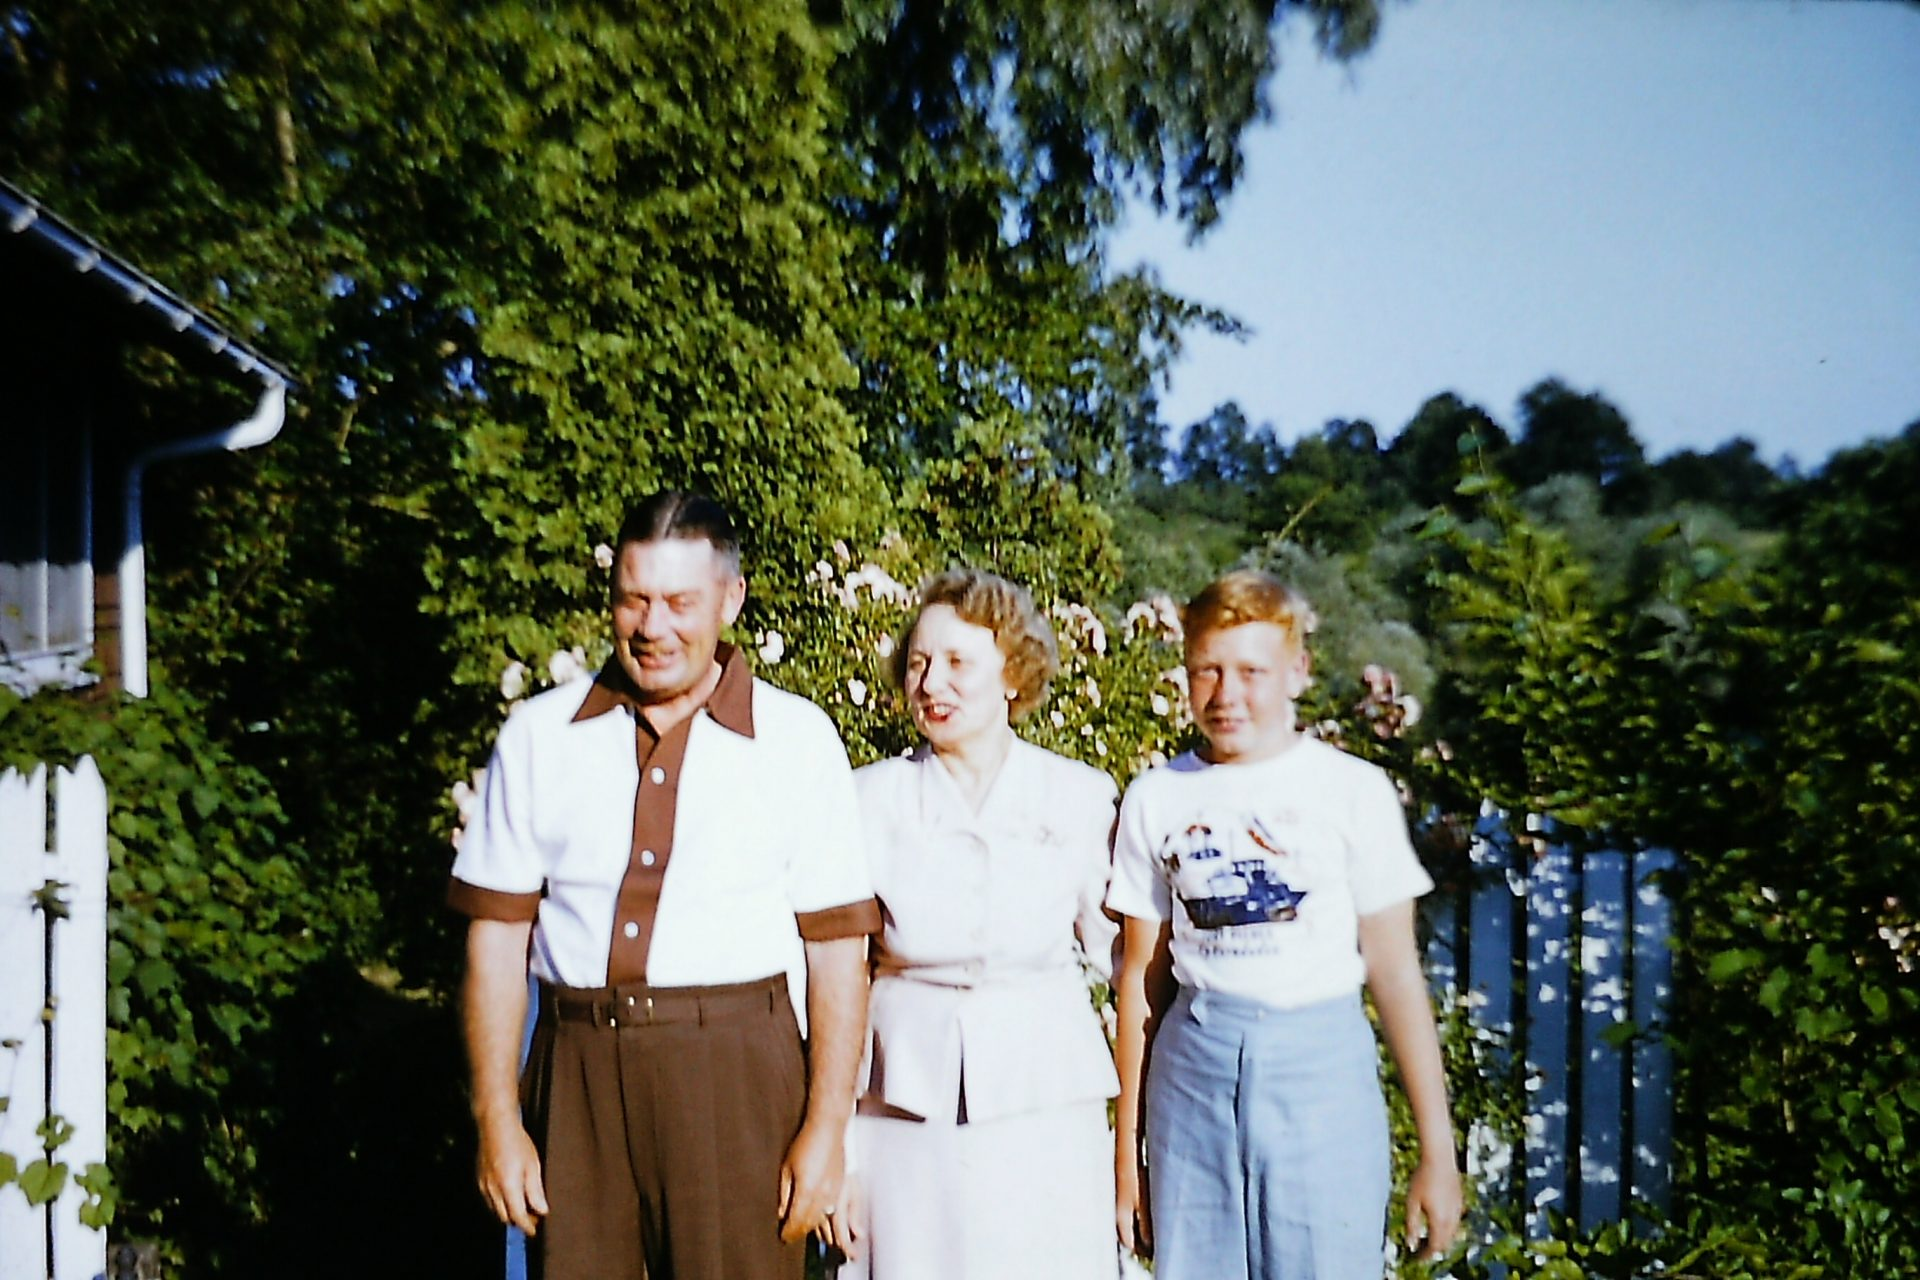 Elgin T. Upham, Henrietta Young Upham, and E. Tyler Upham.   July, 1954, Rochester, NY.<br /> Photo taken by Charles L. Schmidt.  Photo submitted by Charles P. Schmidt.